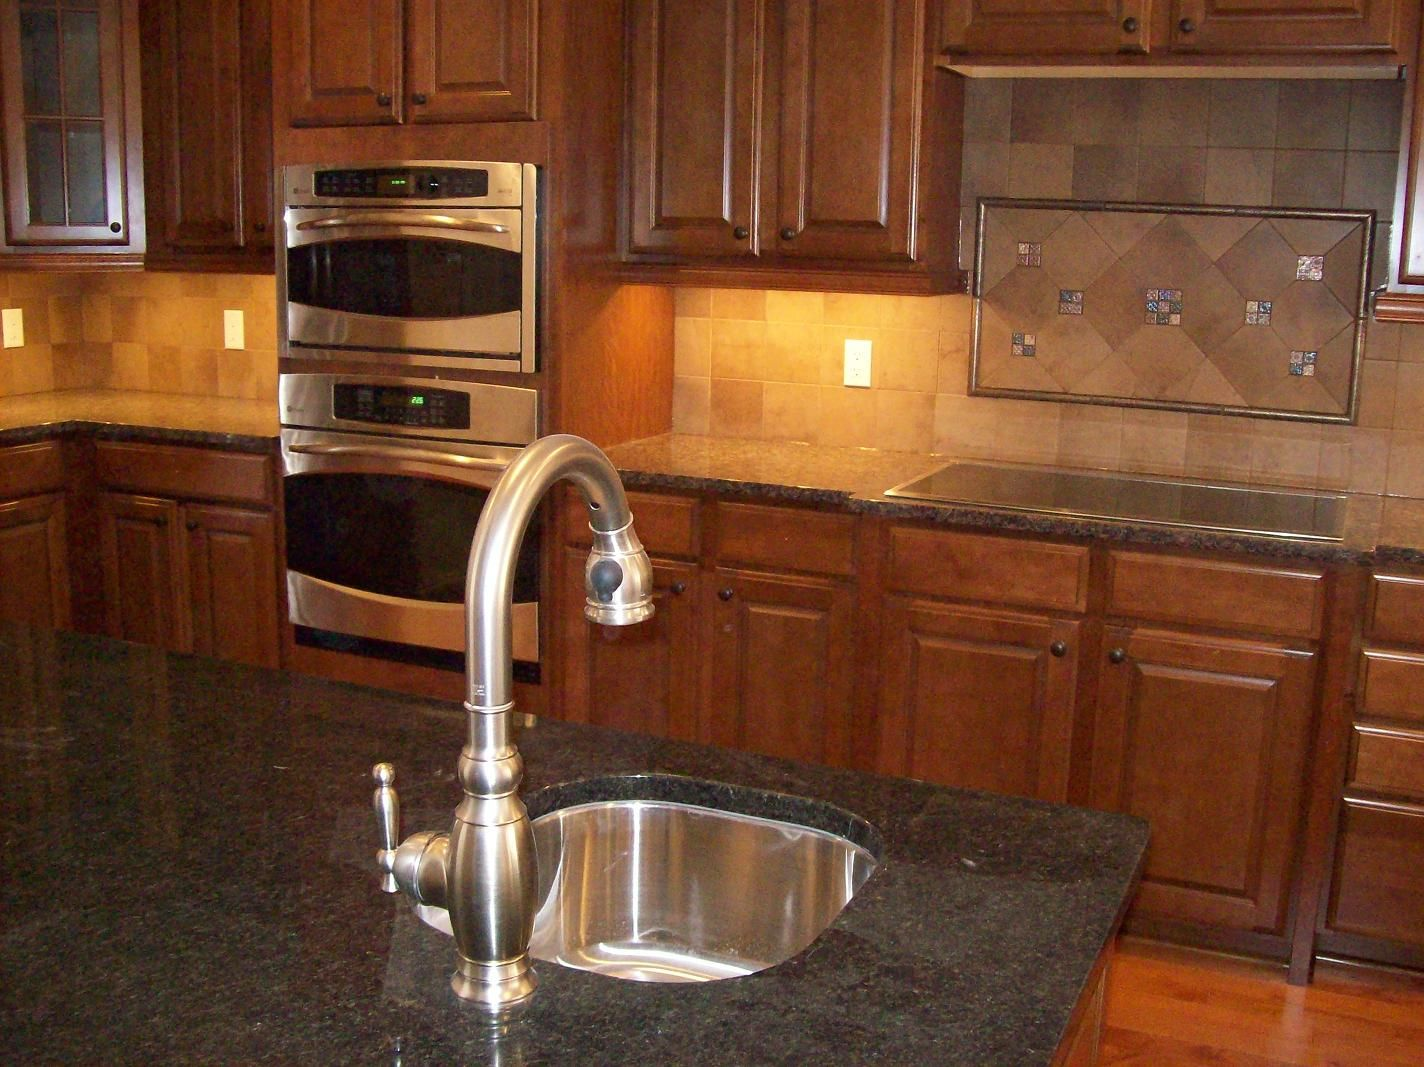 Simple Backsplash Ideas Part - 44: 10 Simple Backsplash Ideas For Your Kitchen: Backsplash Ideas View 9